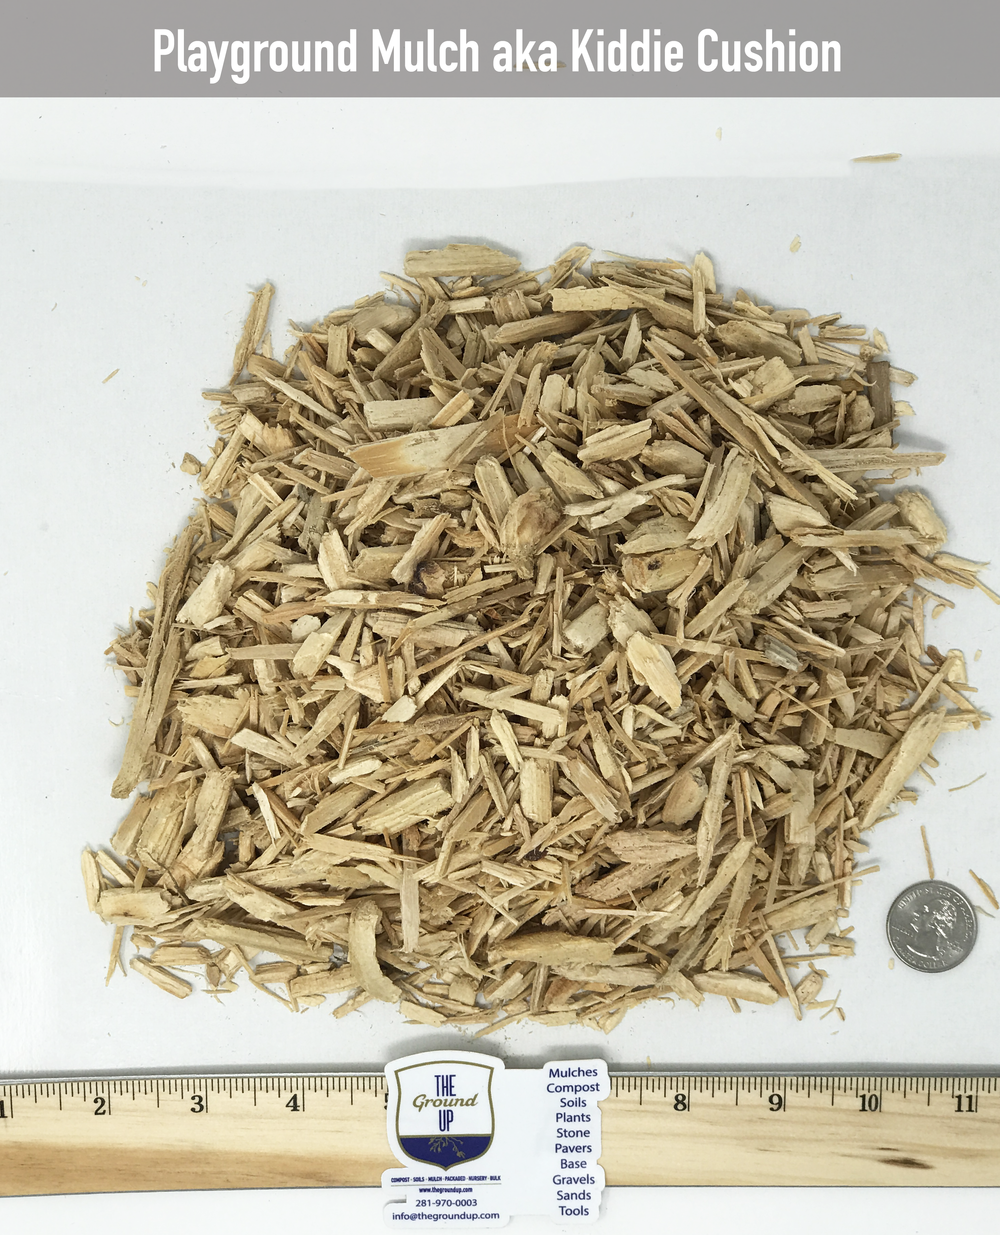 Playground Mulch aka: Kiddie Cushion $35/cuyd  Chipped virgin Pine and/or Red Oak. This material is tested for playground applications.